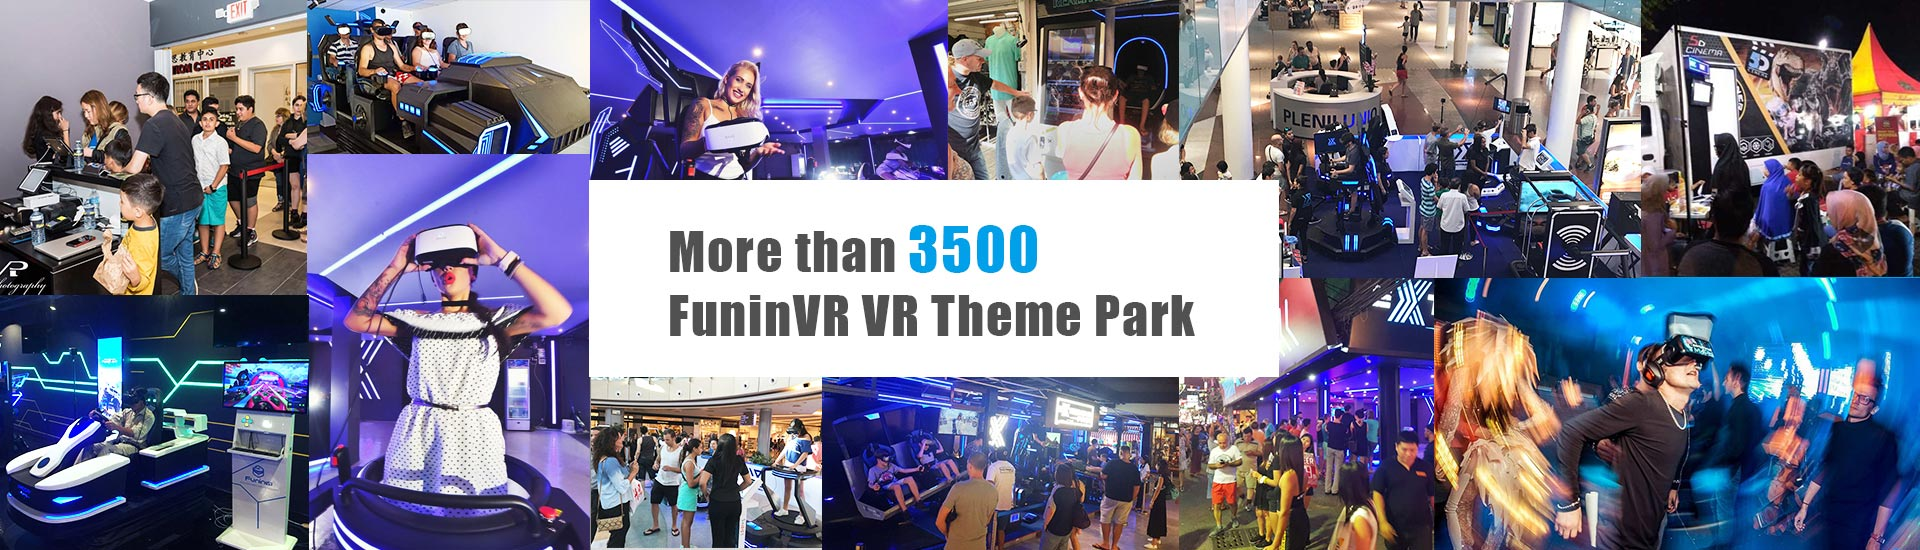 FuninVR 9D Virtual Reality egg VR Simulator